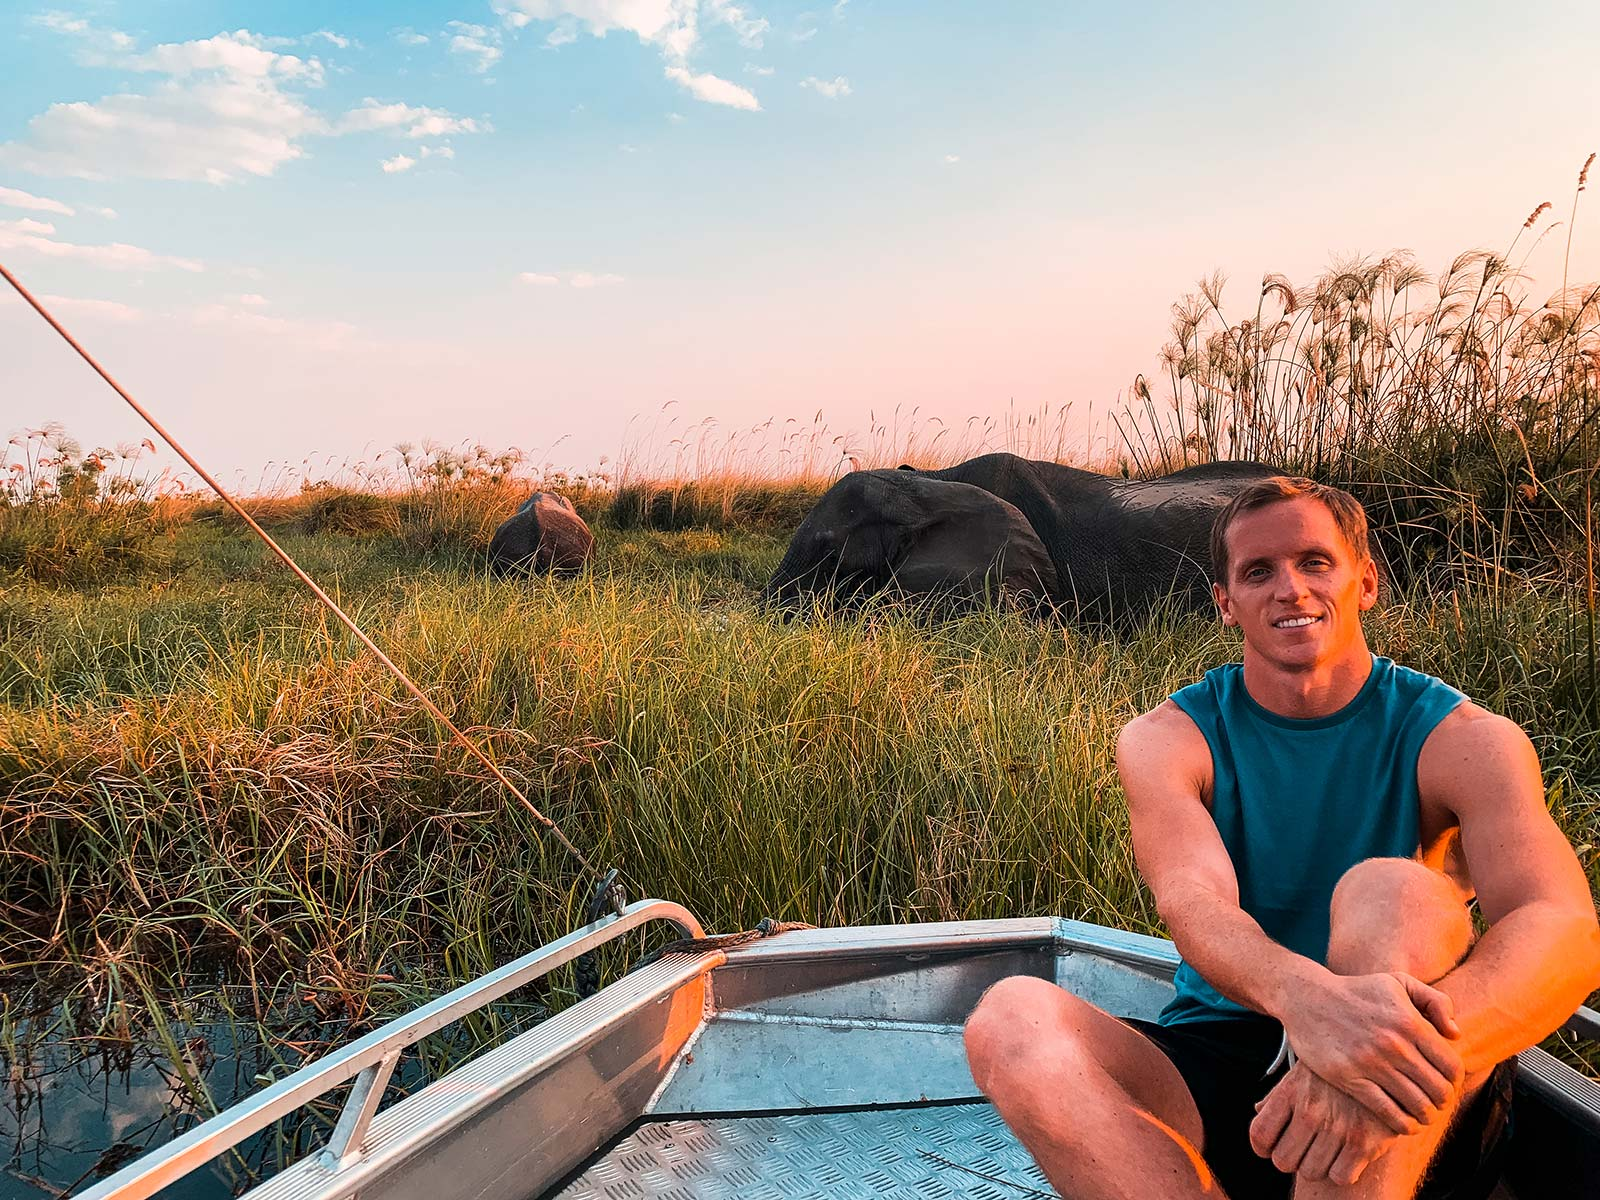 David Simpson with elephants at Okavango Delta in Botswana, Africa. An owl and African sunsets